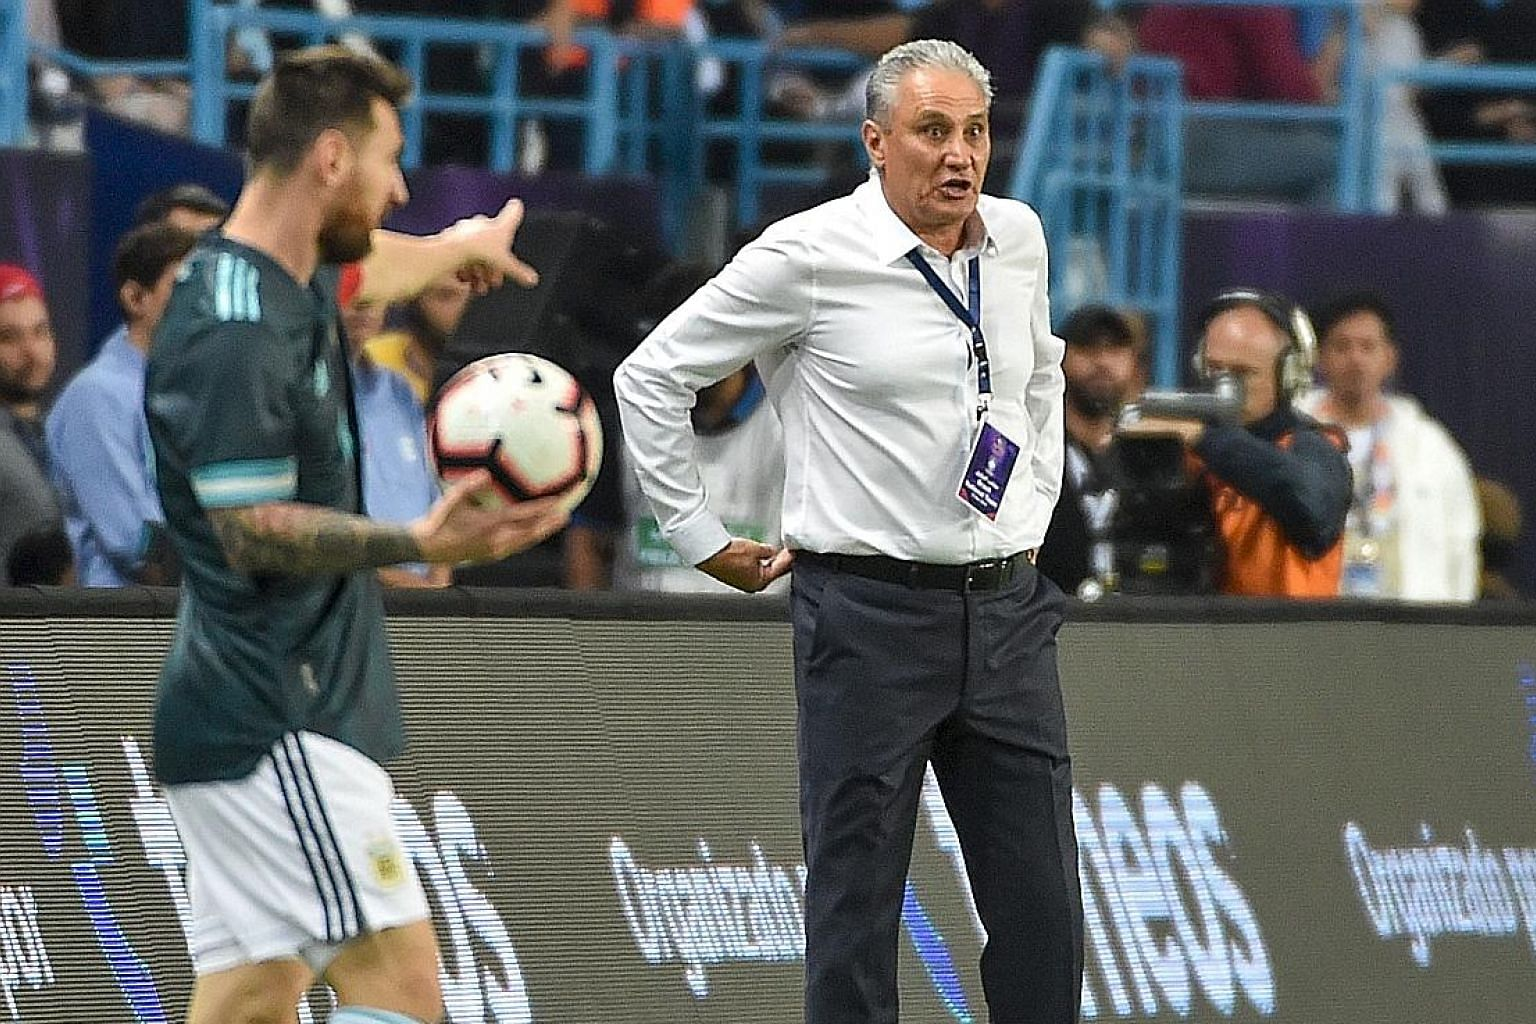 Argentina striker Lionel Messi and Brazil coach Tite exchanged words during a friendly match in Riyadh on Friday. Messi's goal in the 1-0 win extended Argentina's unbeaten run to six matches.